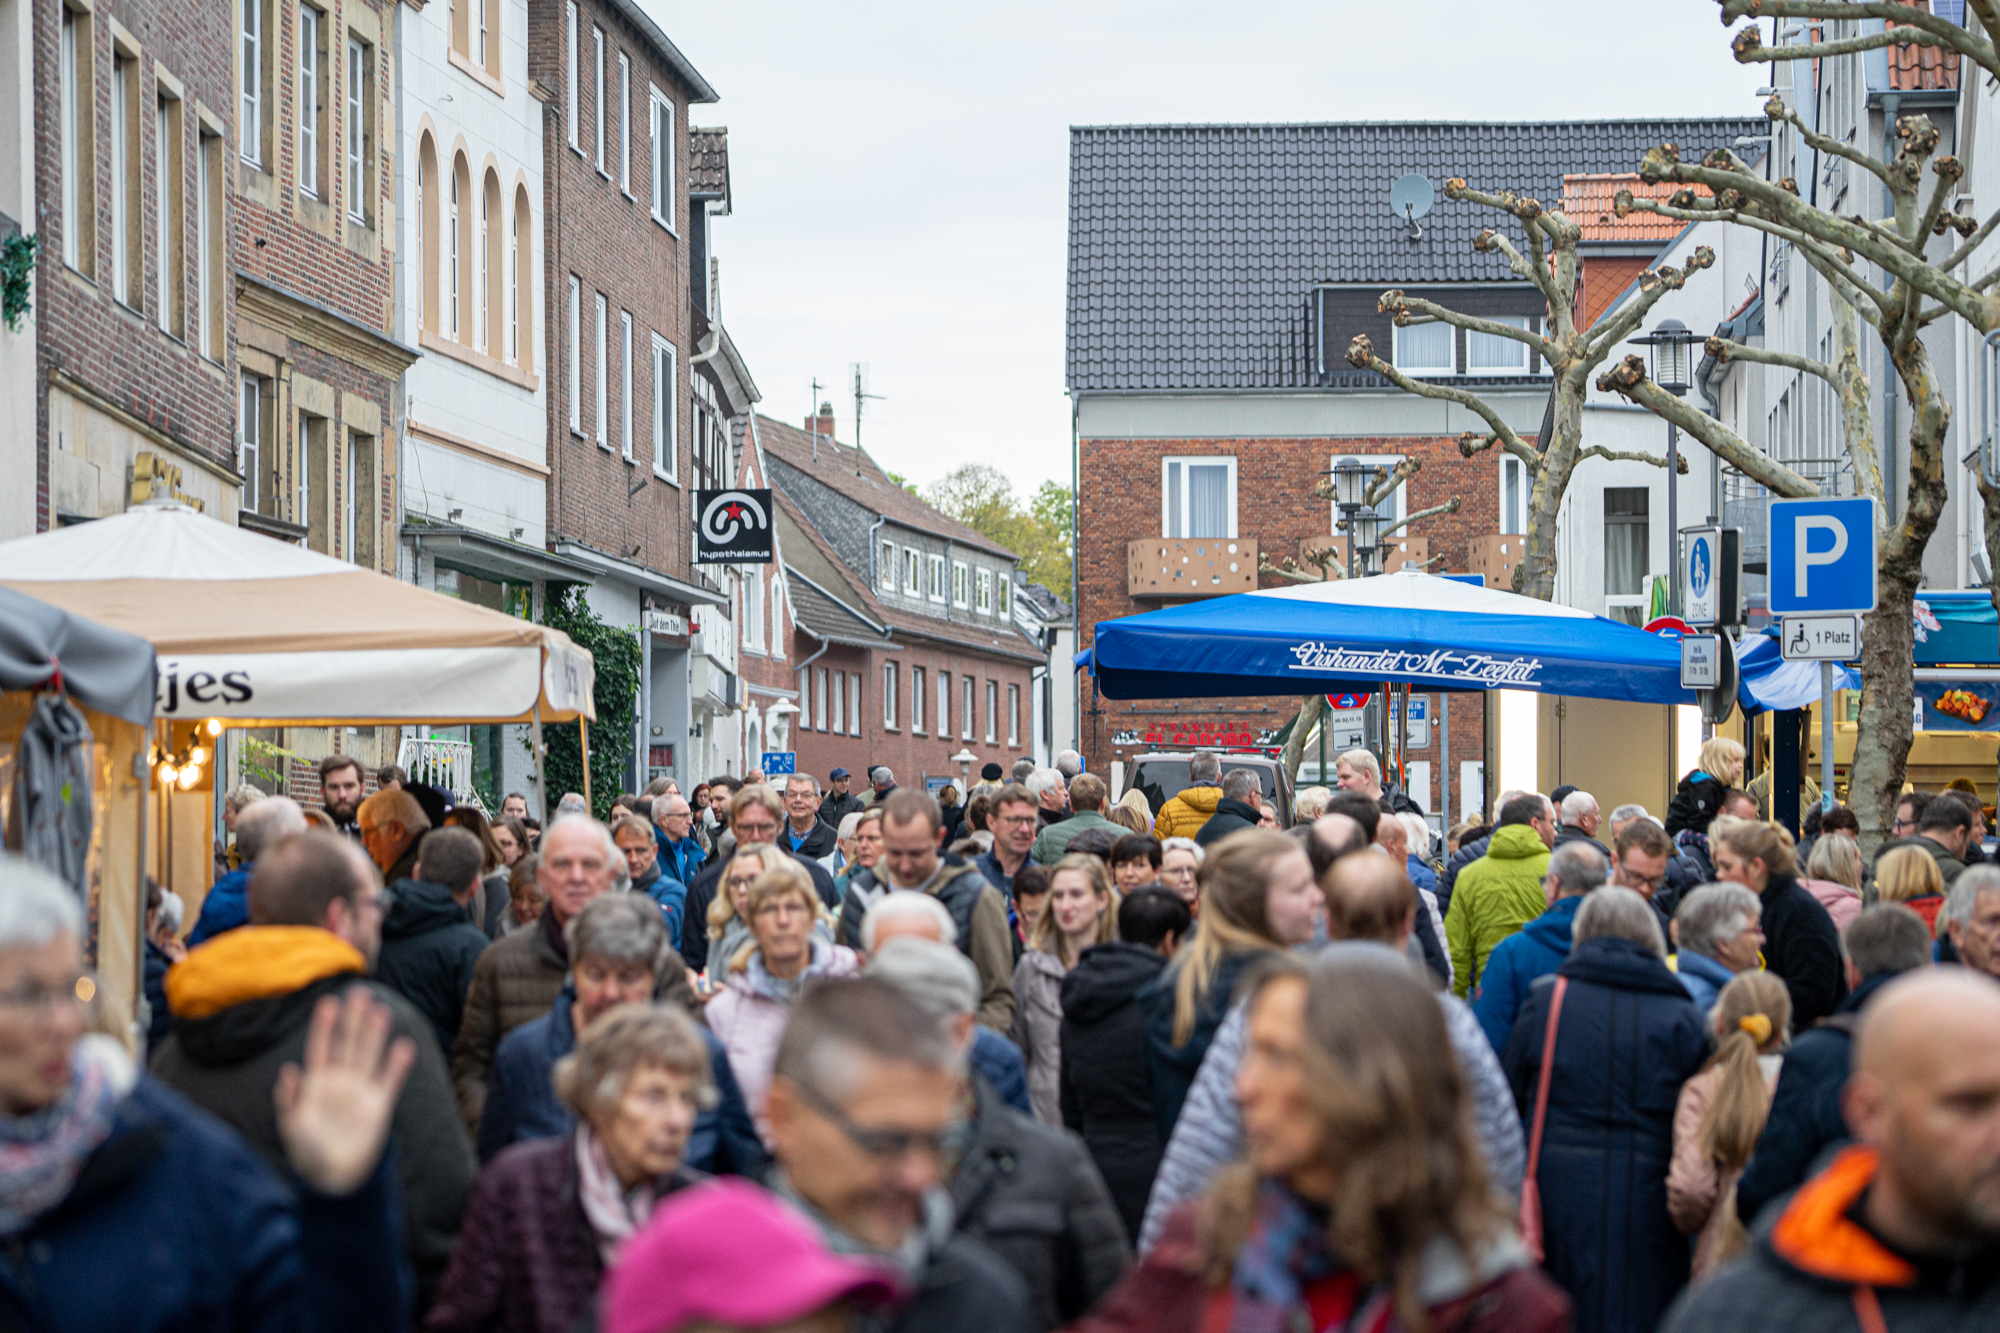 Martinsmarkt 2020 Hollandmarkt